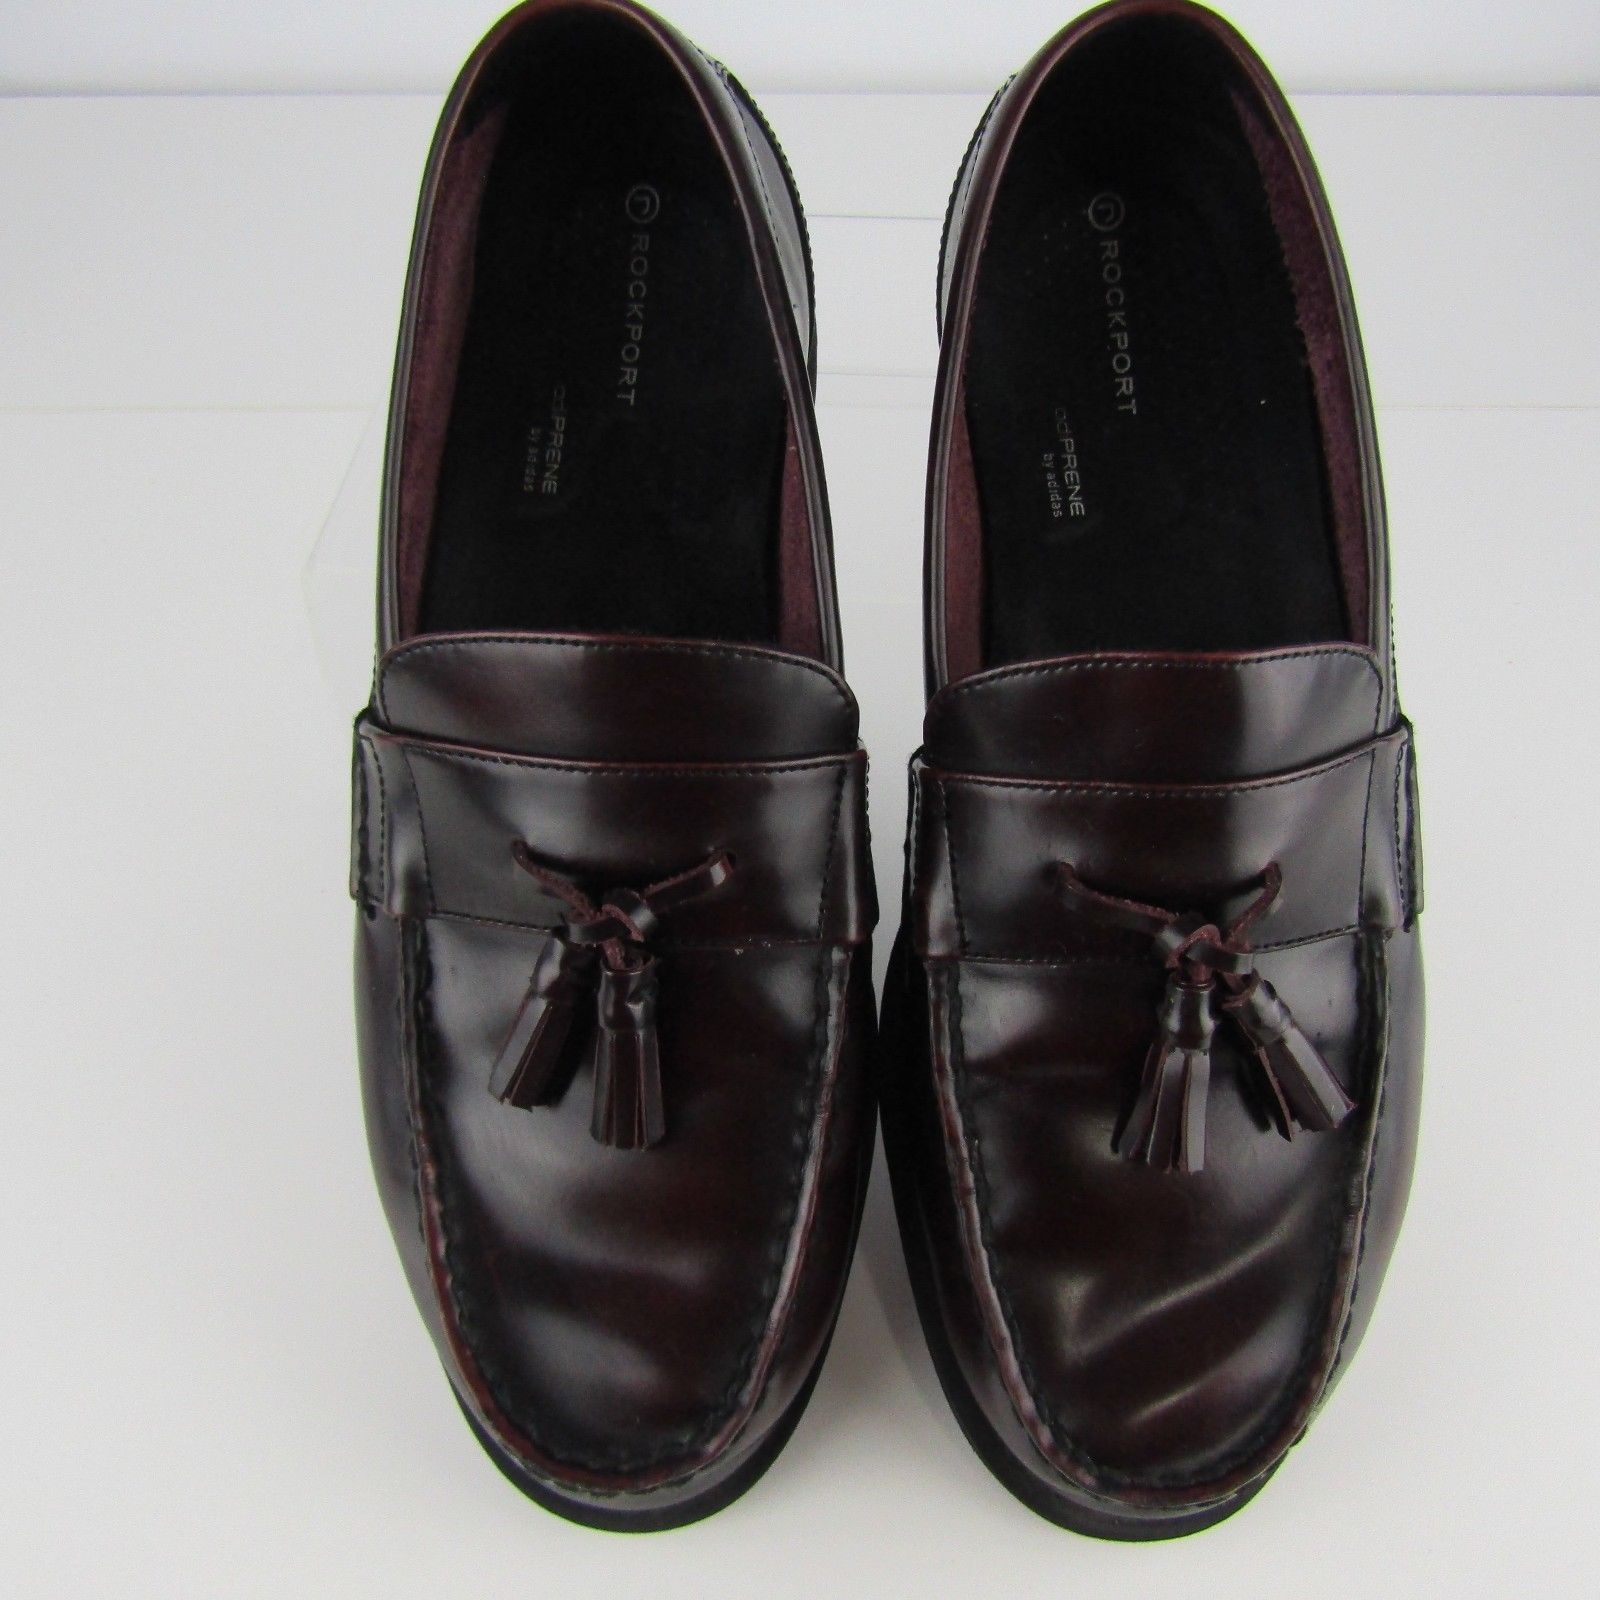 ROCKPORT LEATHER MEN'S Shoes Adiprene Adidas Brown 11.5 M Oxford Slip On Loafers